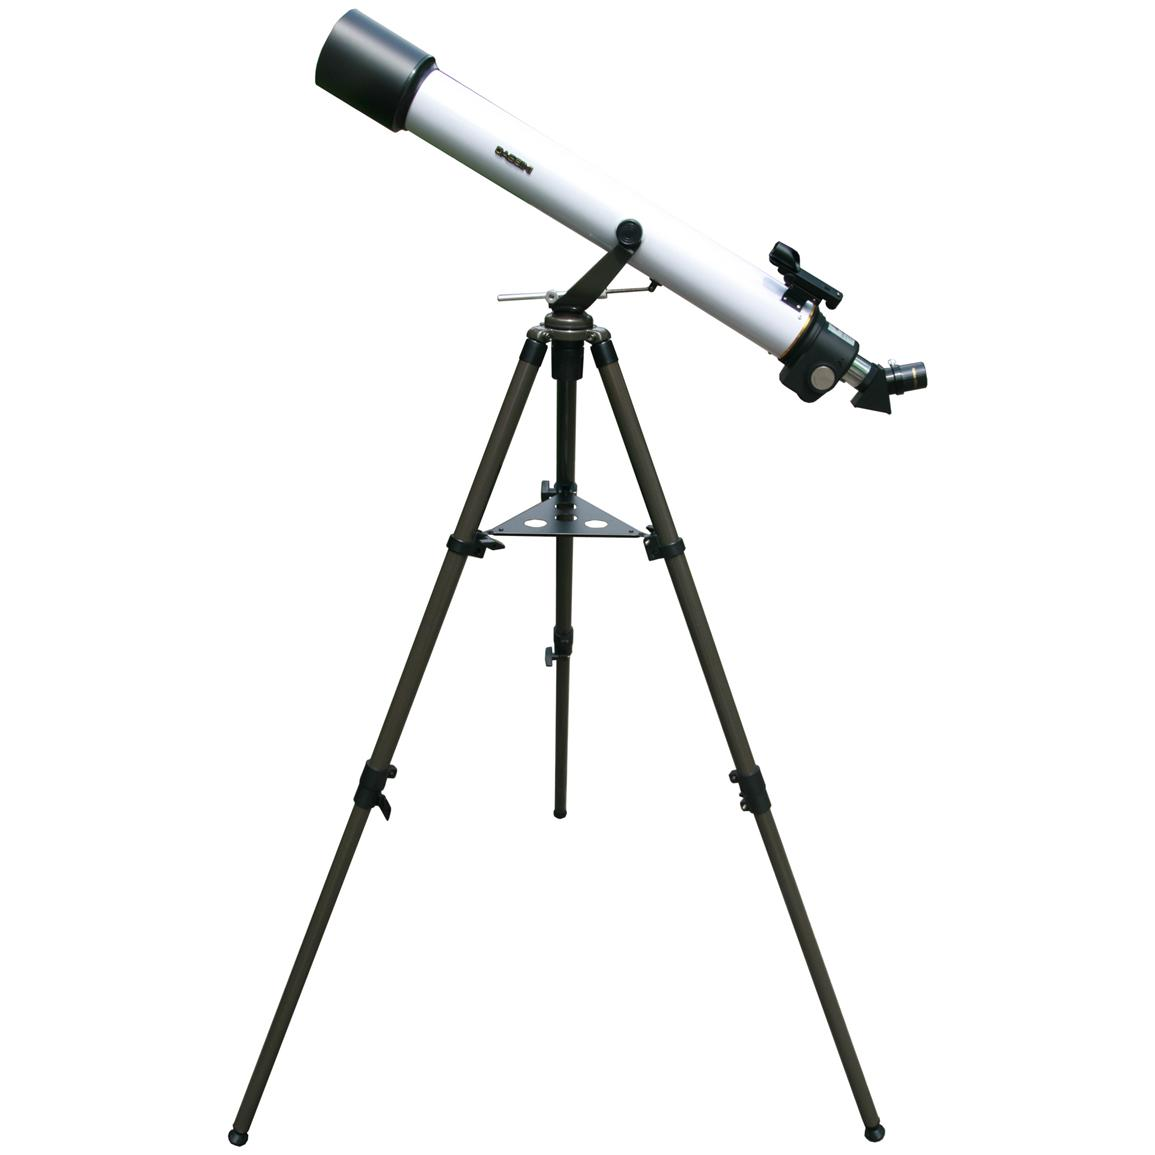 Cassini Optics® C-872EFS 800mm x 72mm Electronic Focus Astronomical / Terrestrial Refractor Telescope with Remote